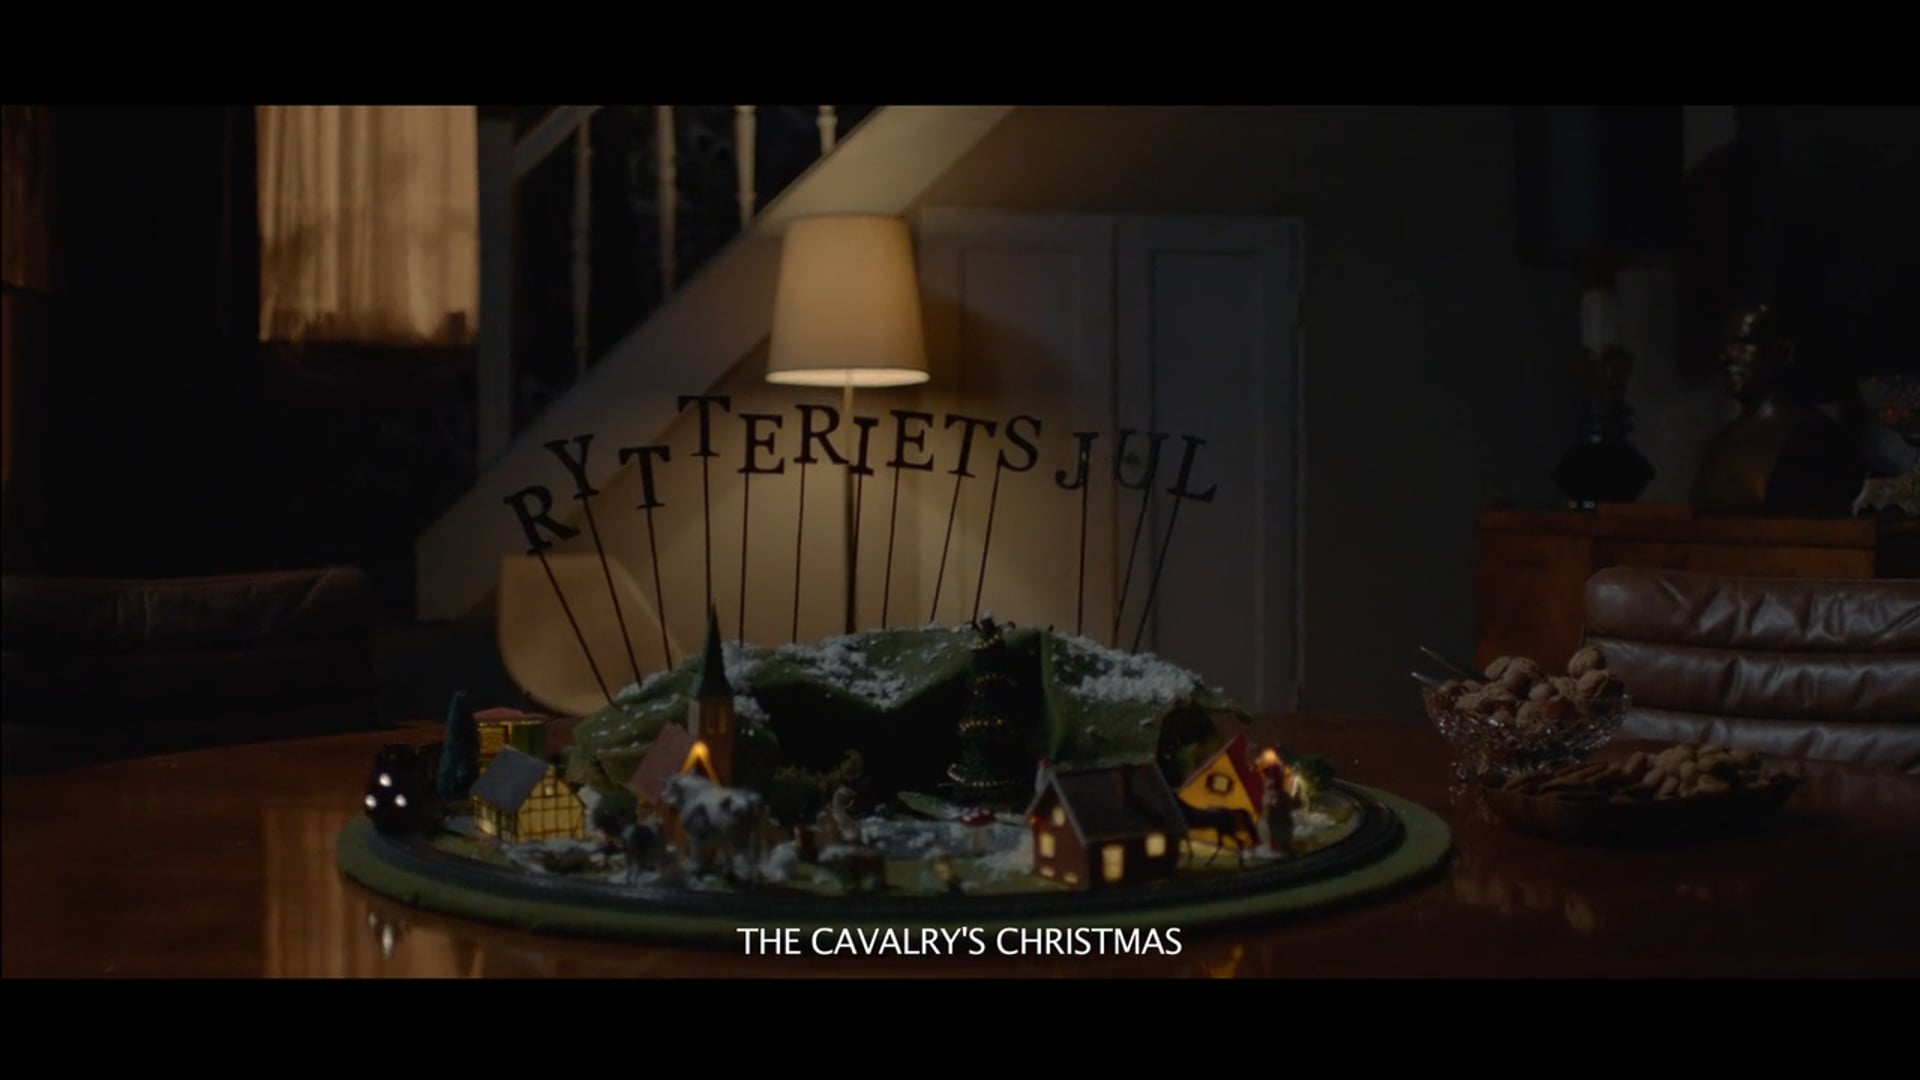 RYTTERIETS JUL (The Cavalry's Christmas) - Episode III